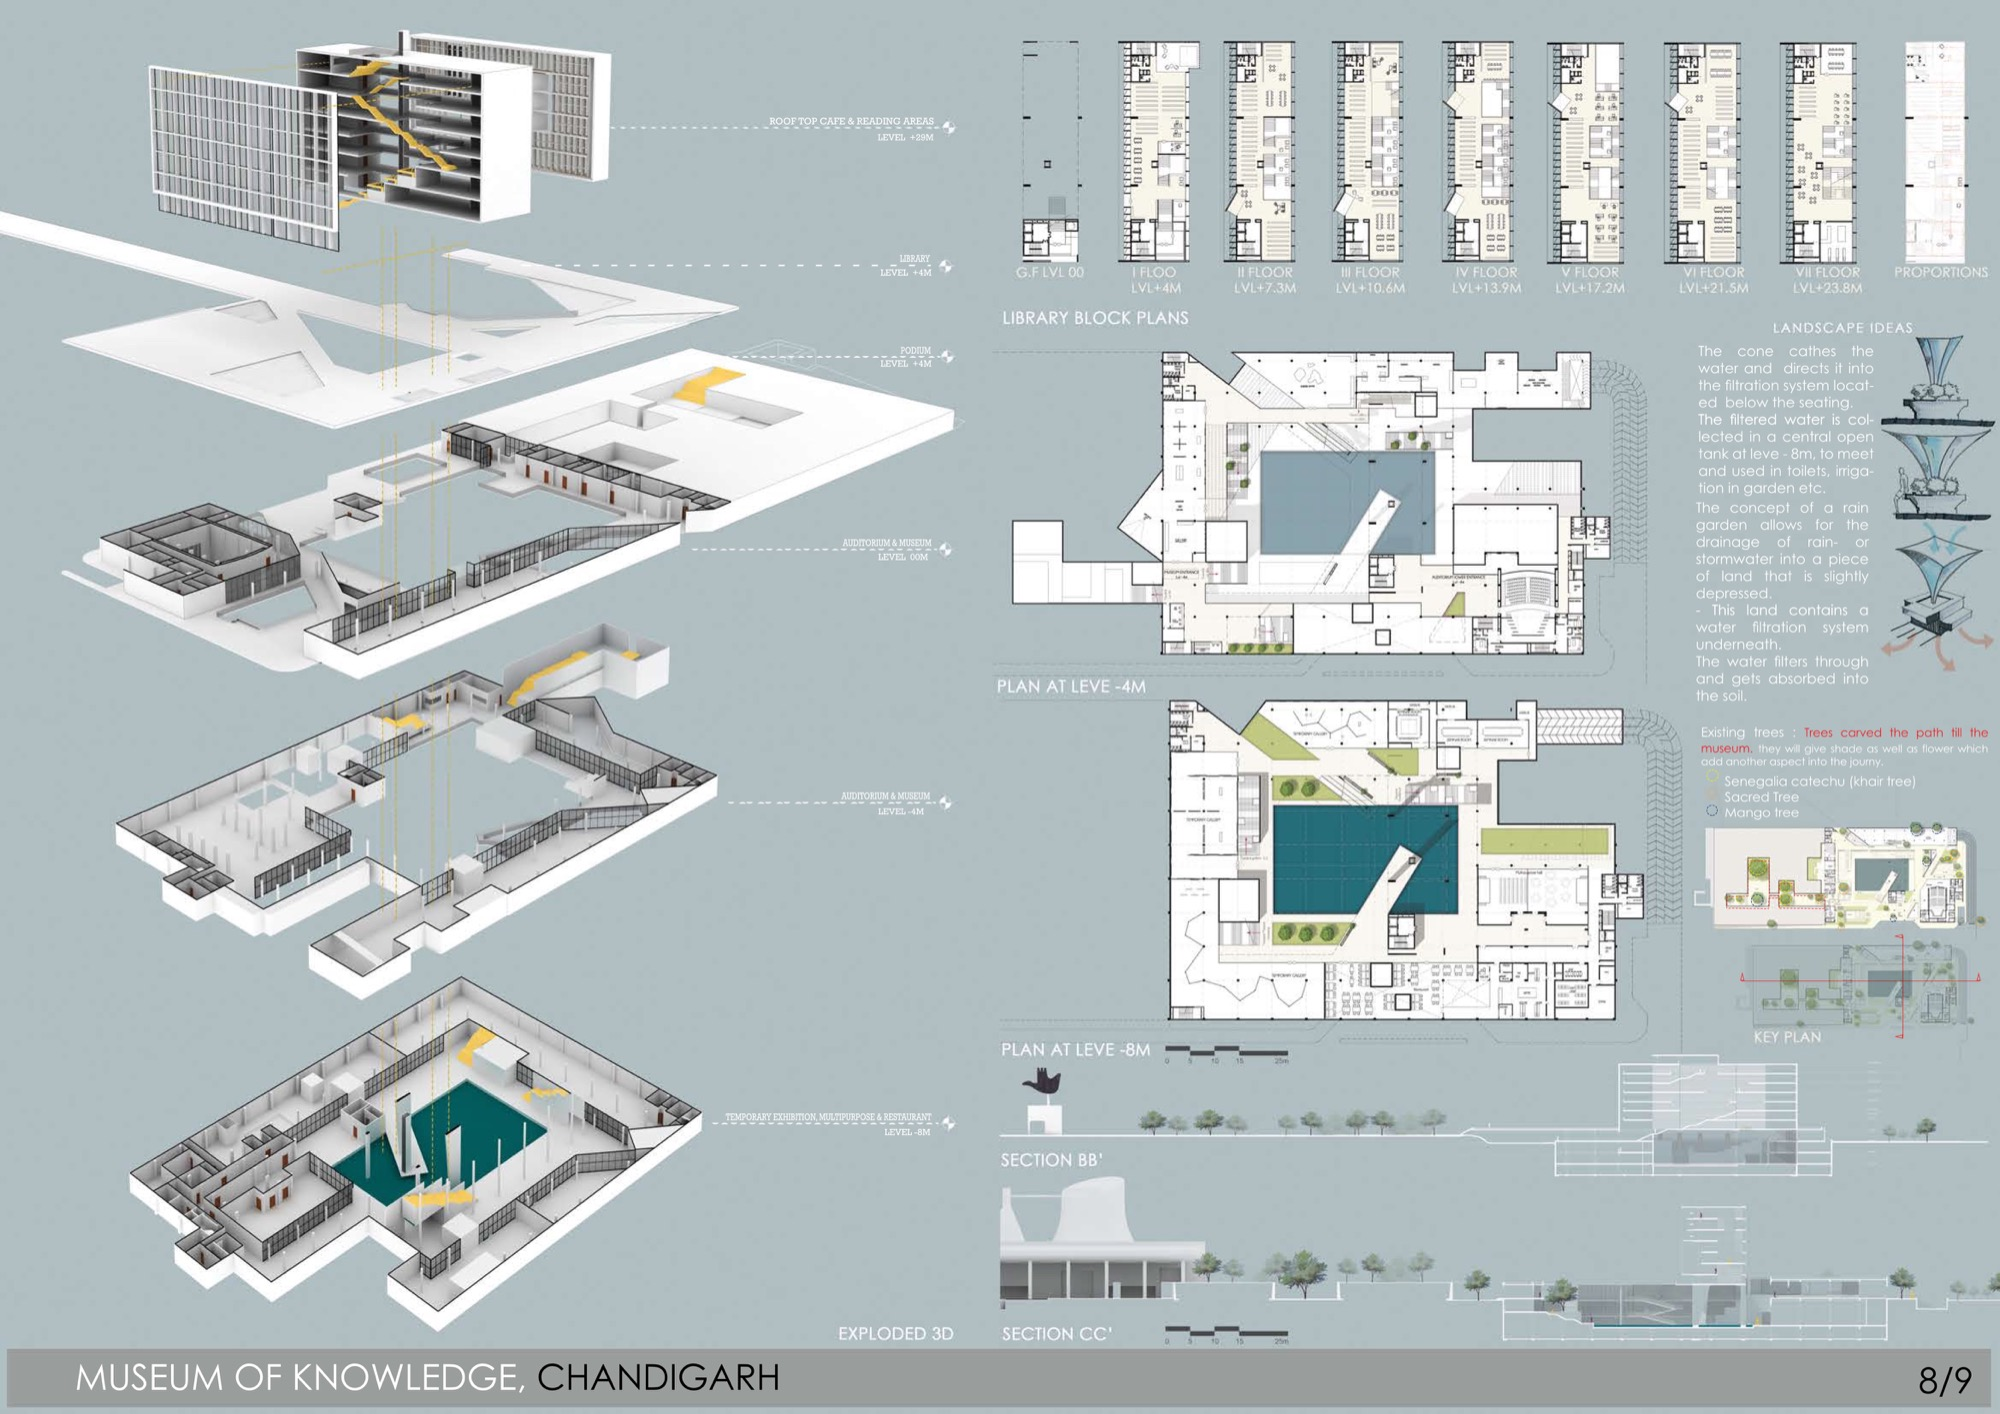 B.Arch Thesis: Museum of Knowledge, Chandigarh, by Nikhil Pawar 26